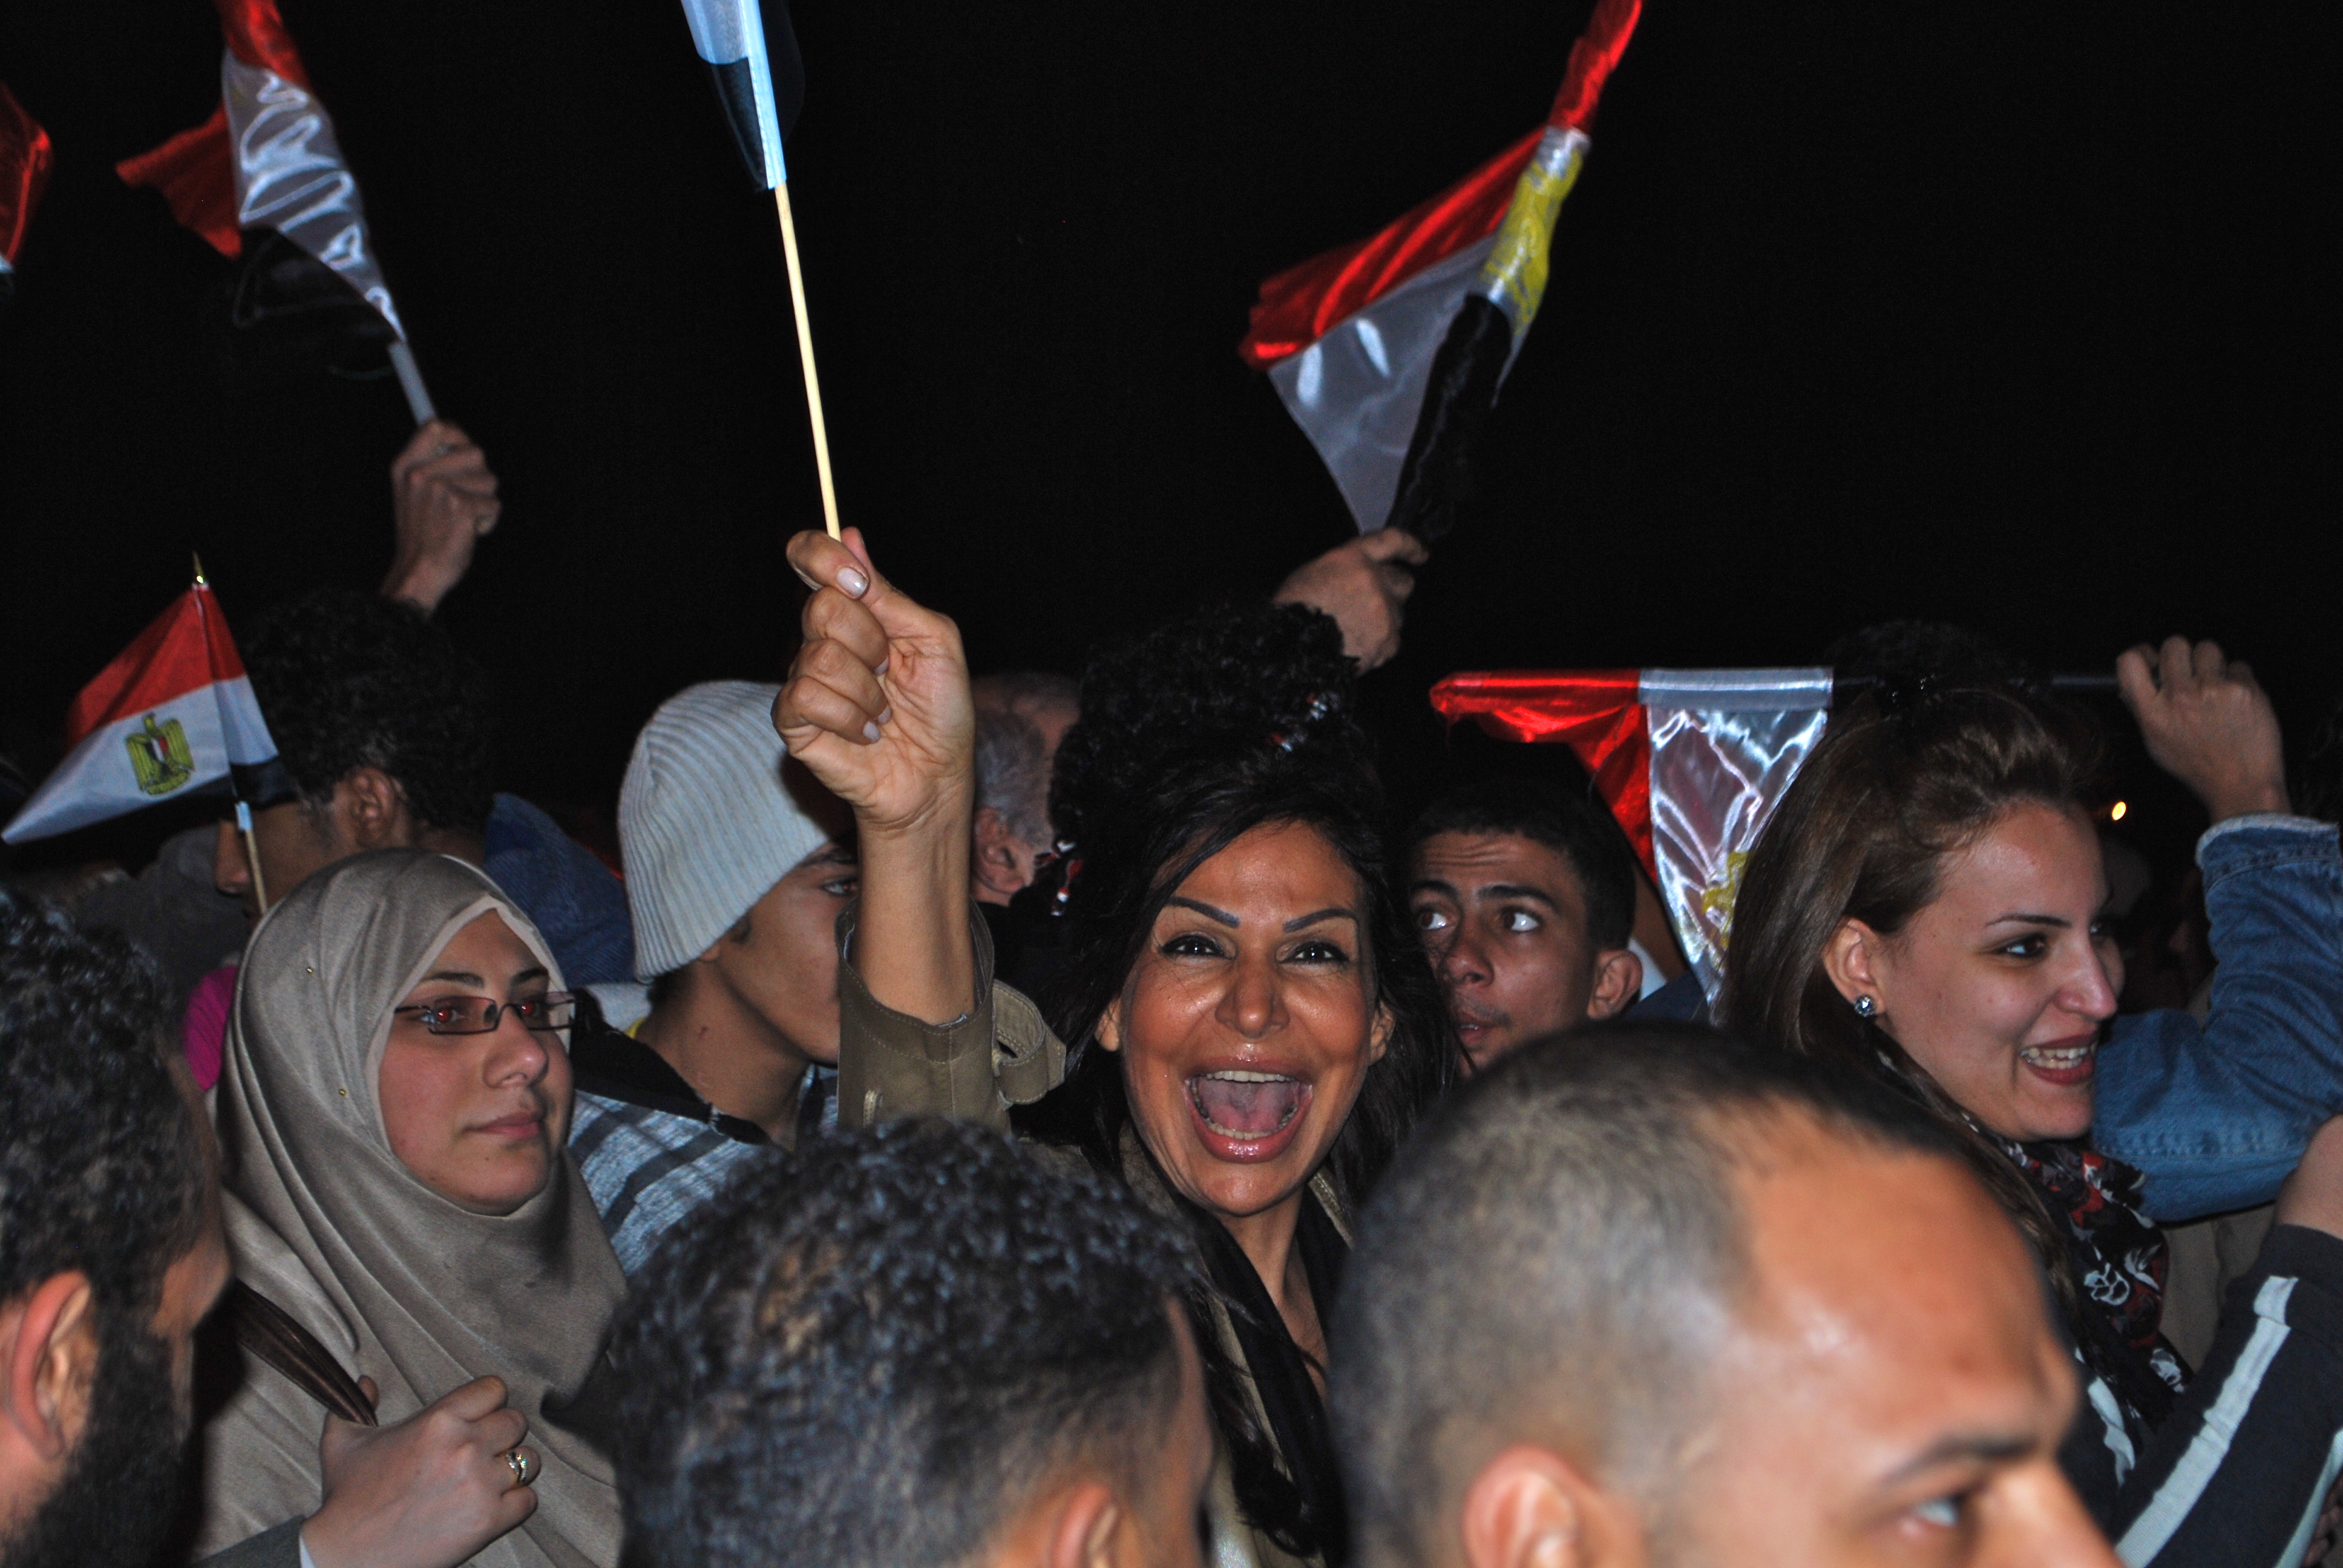 Egypt: new constitution affirms gender equality in electoral rights